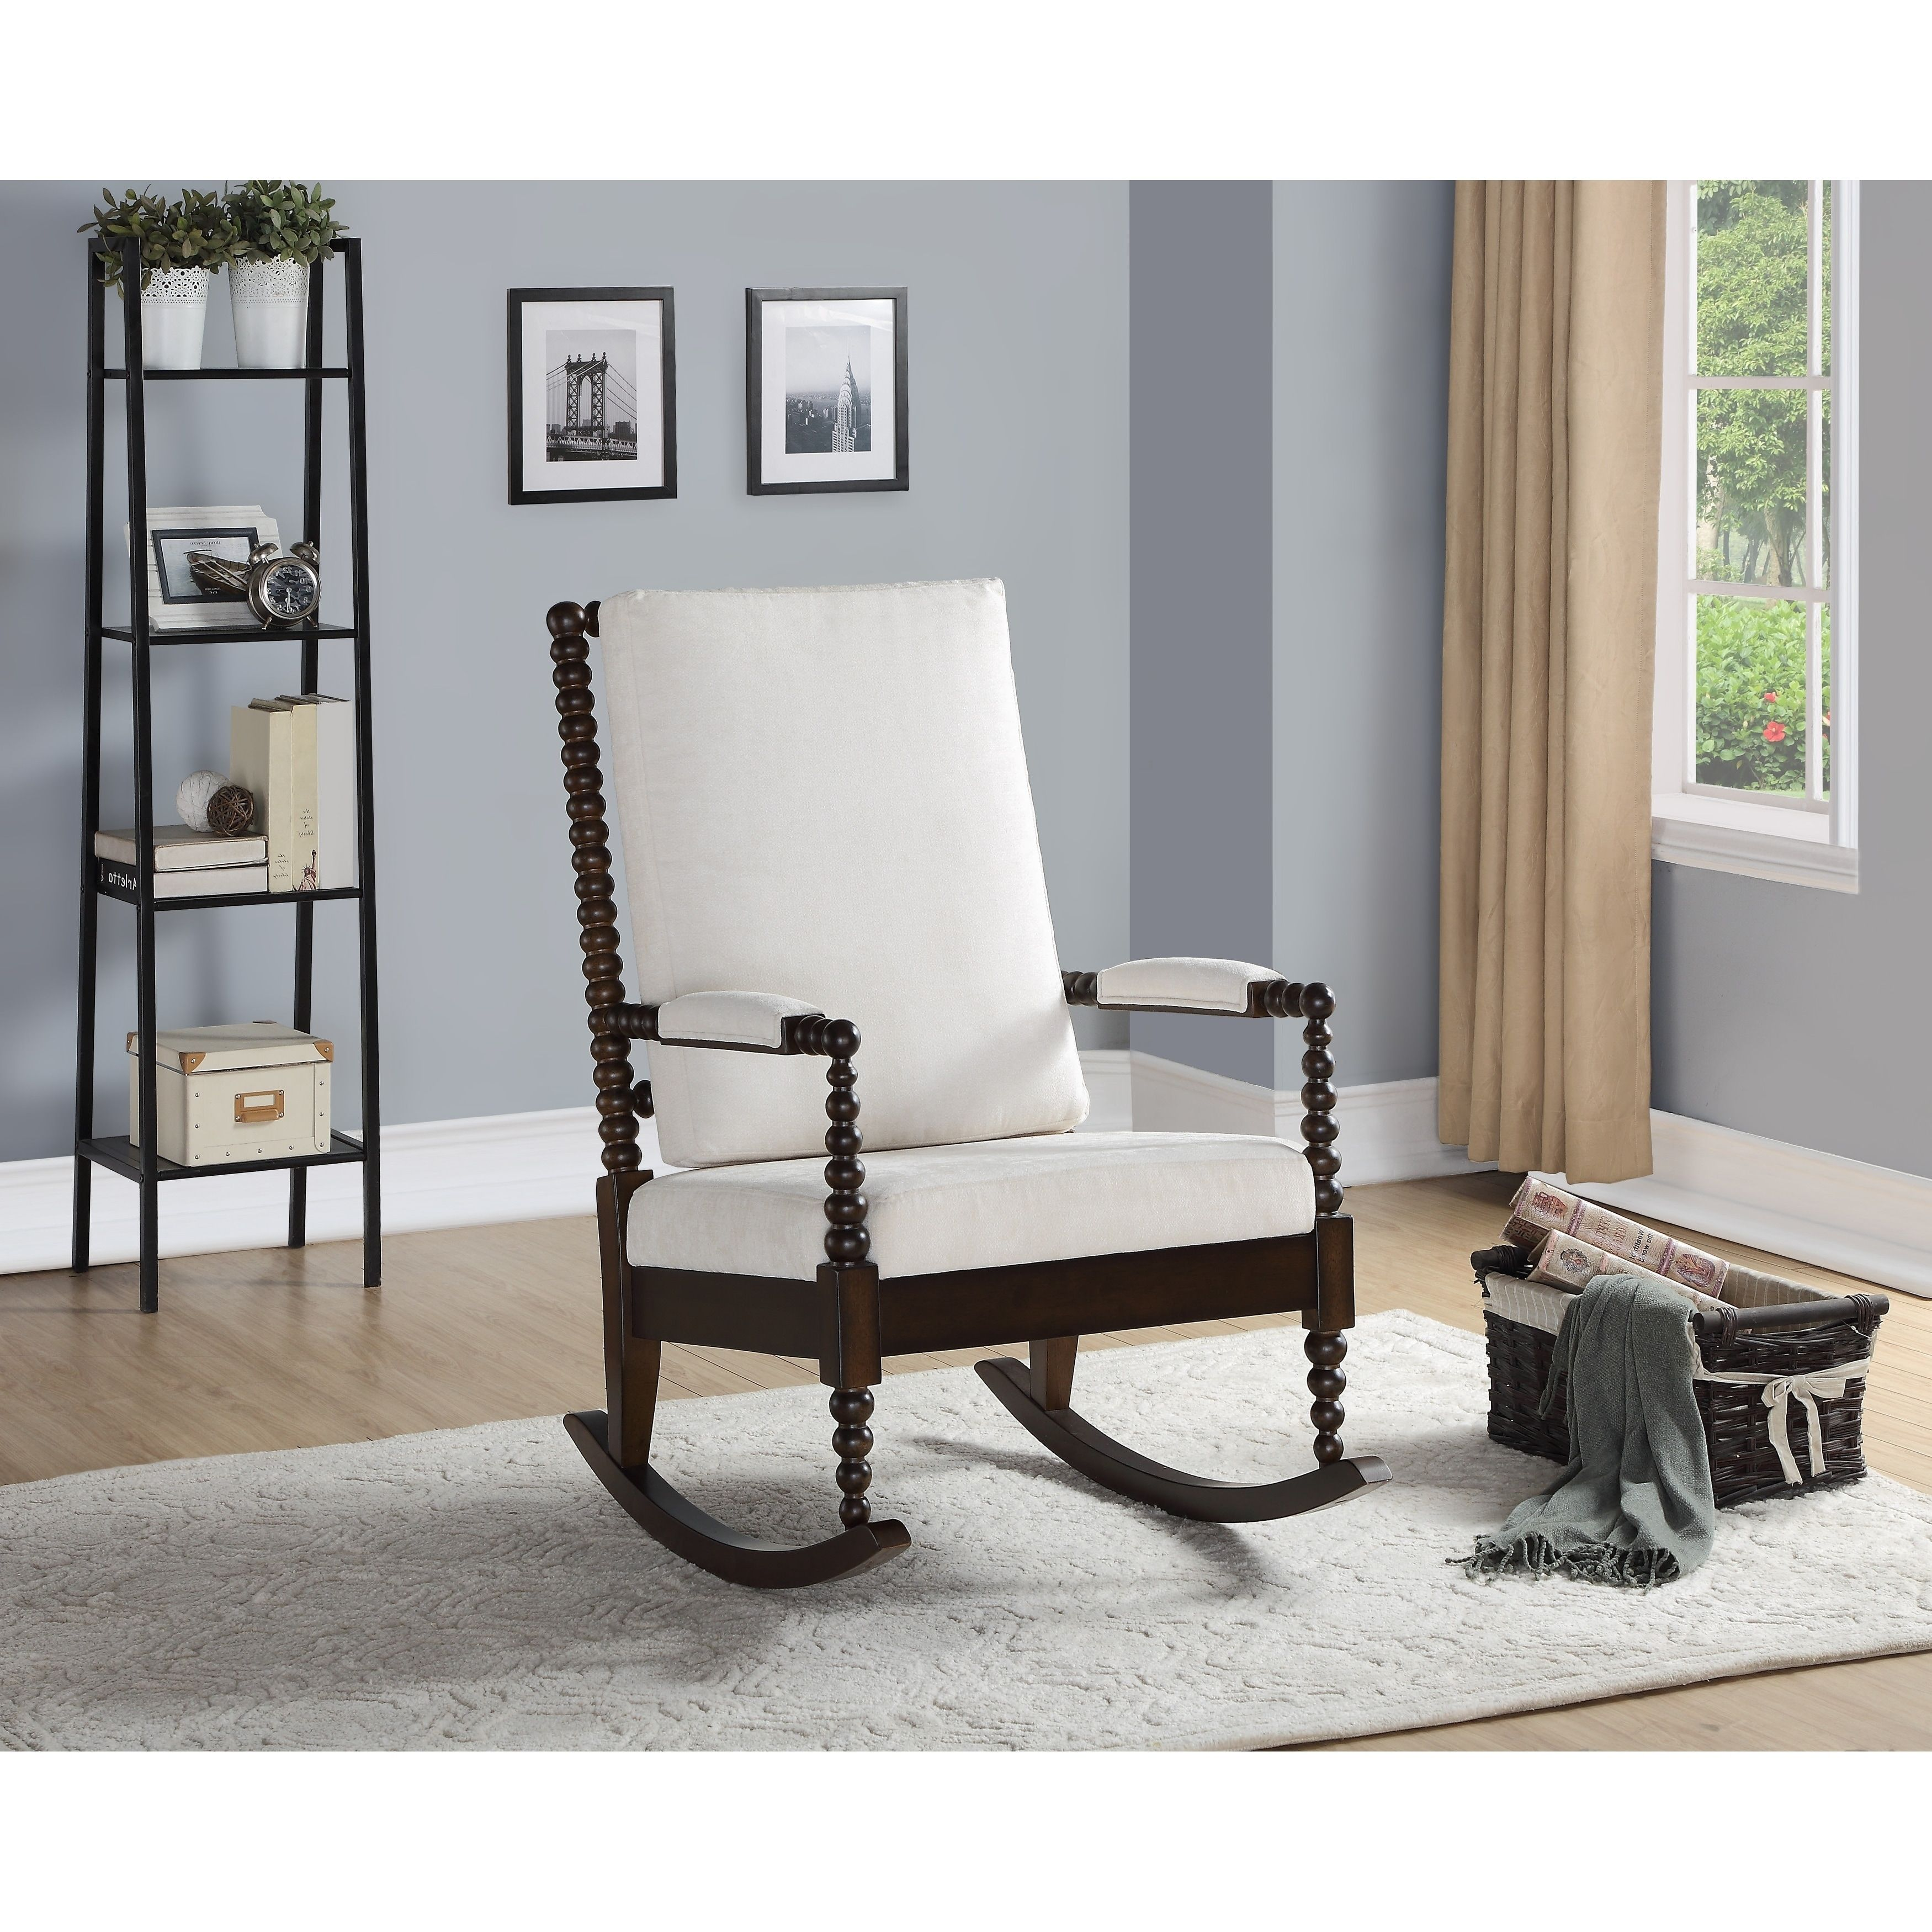 Terrific Copper Grove Drnis Rocking Chair With Cream Fabric And Squirreltailoven Fun Painted Chair Ideas Images Squirreltailovenorg